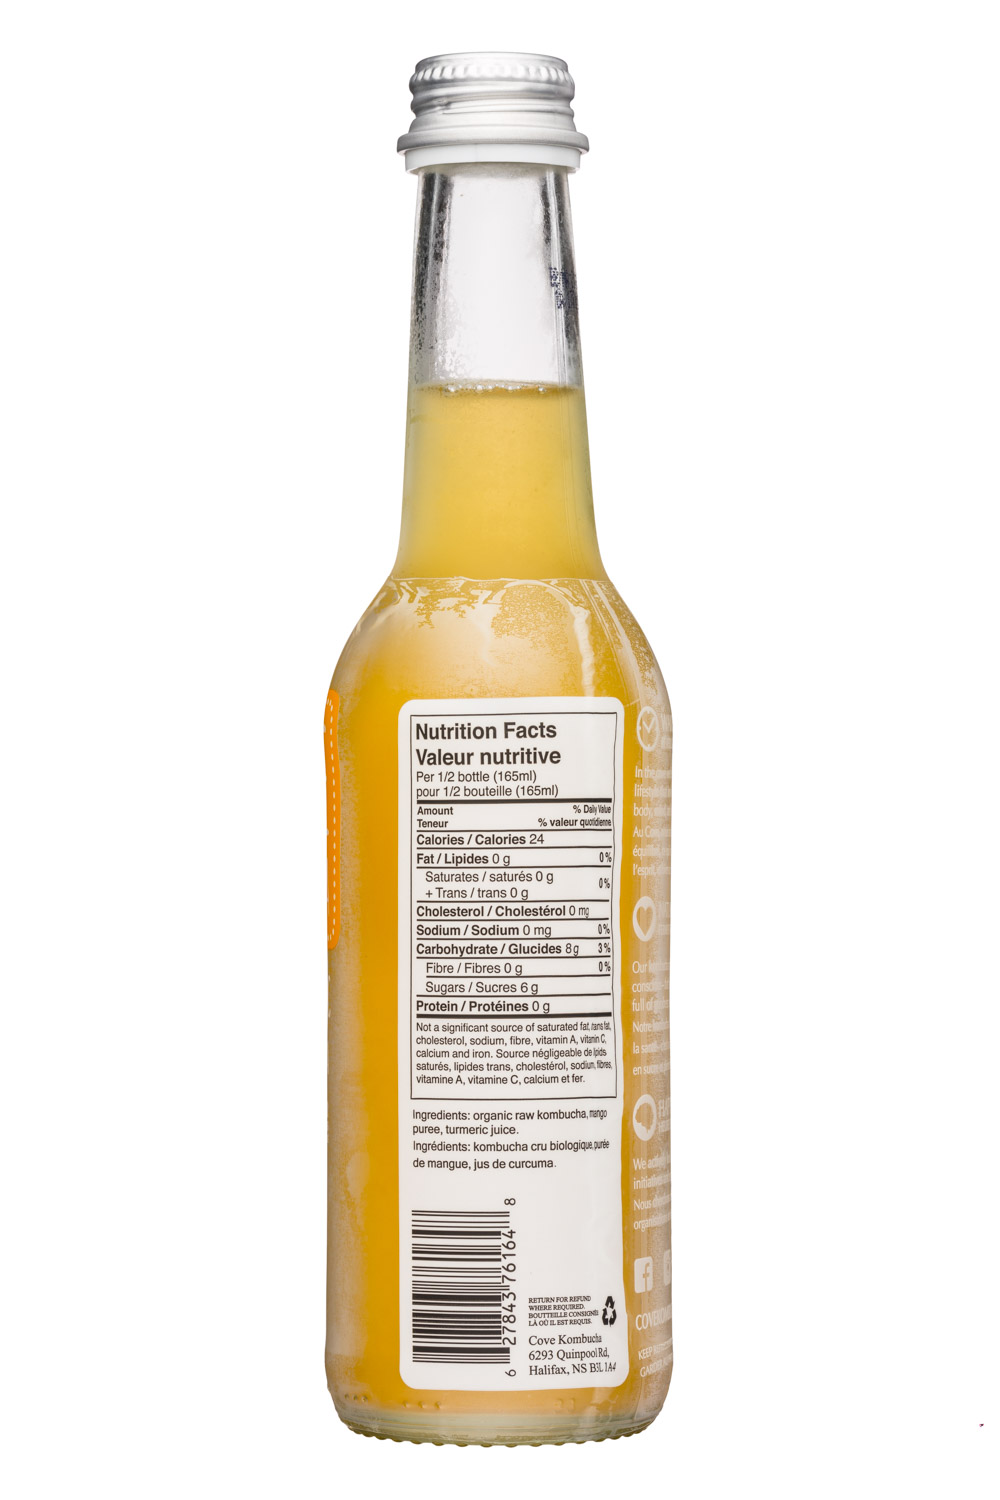 Cove Kombucha: CoveKombucha-330ml-MangoTurmeric-Facts